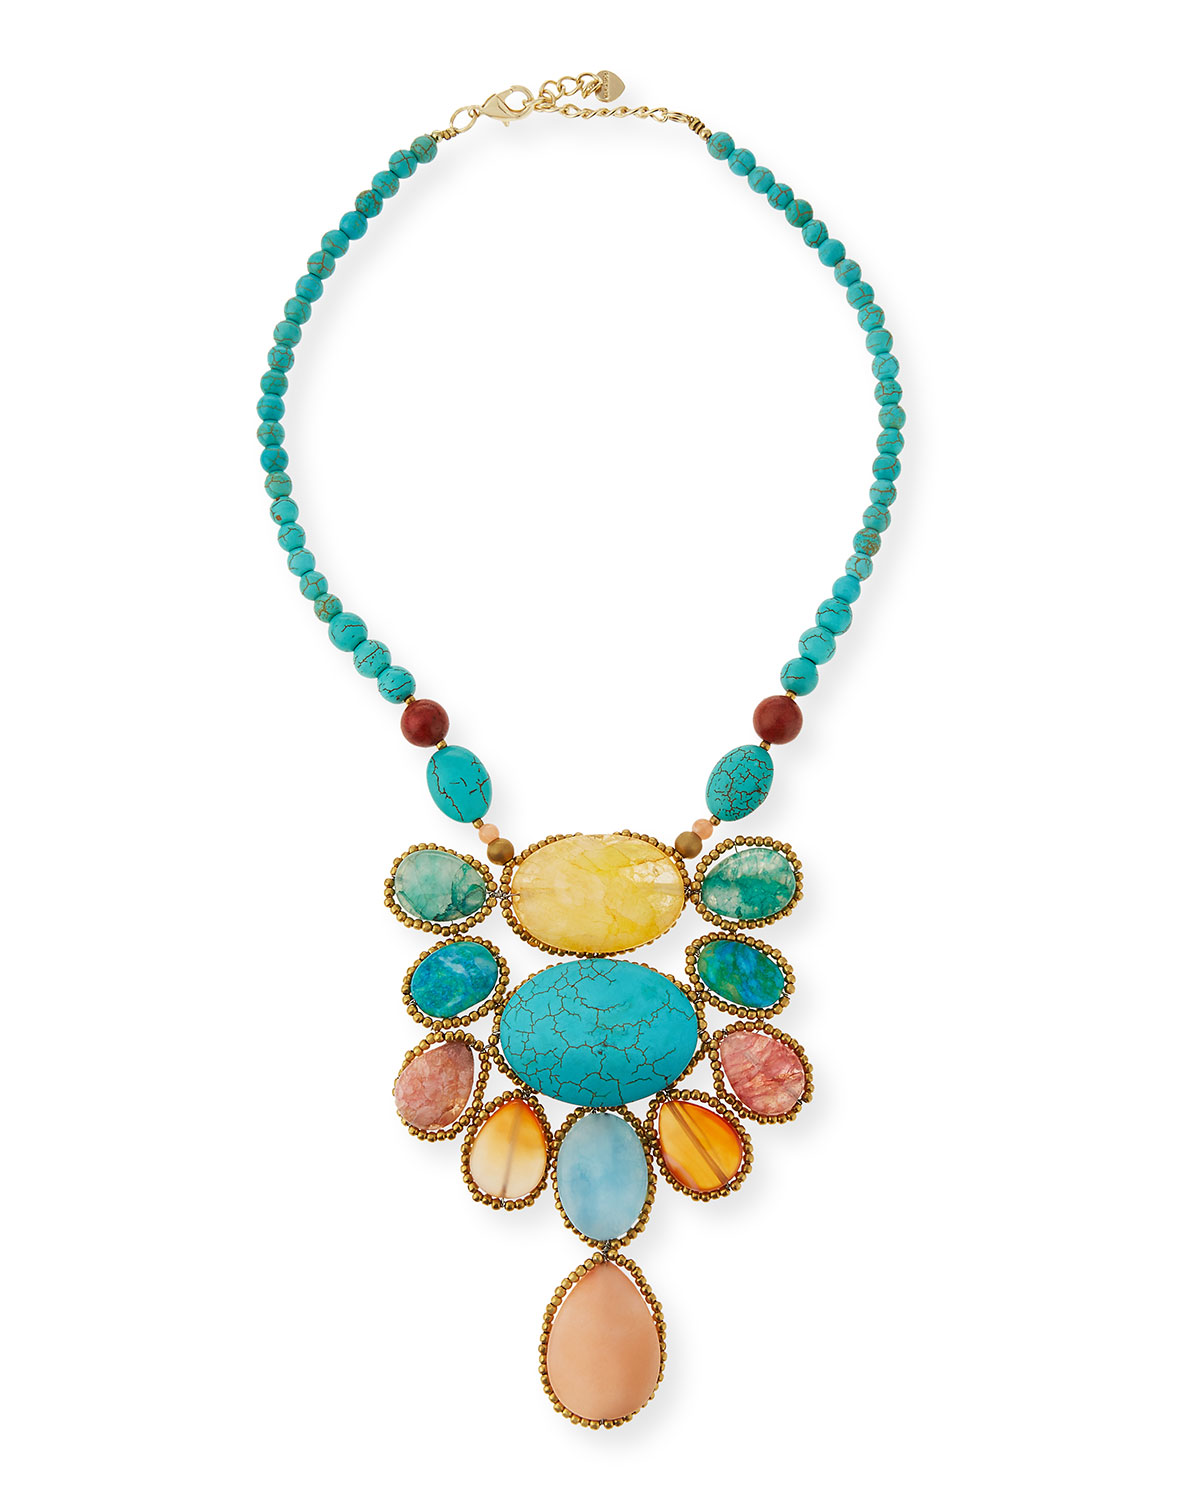 Turquoise Magnesite & Agate Statement Necklace